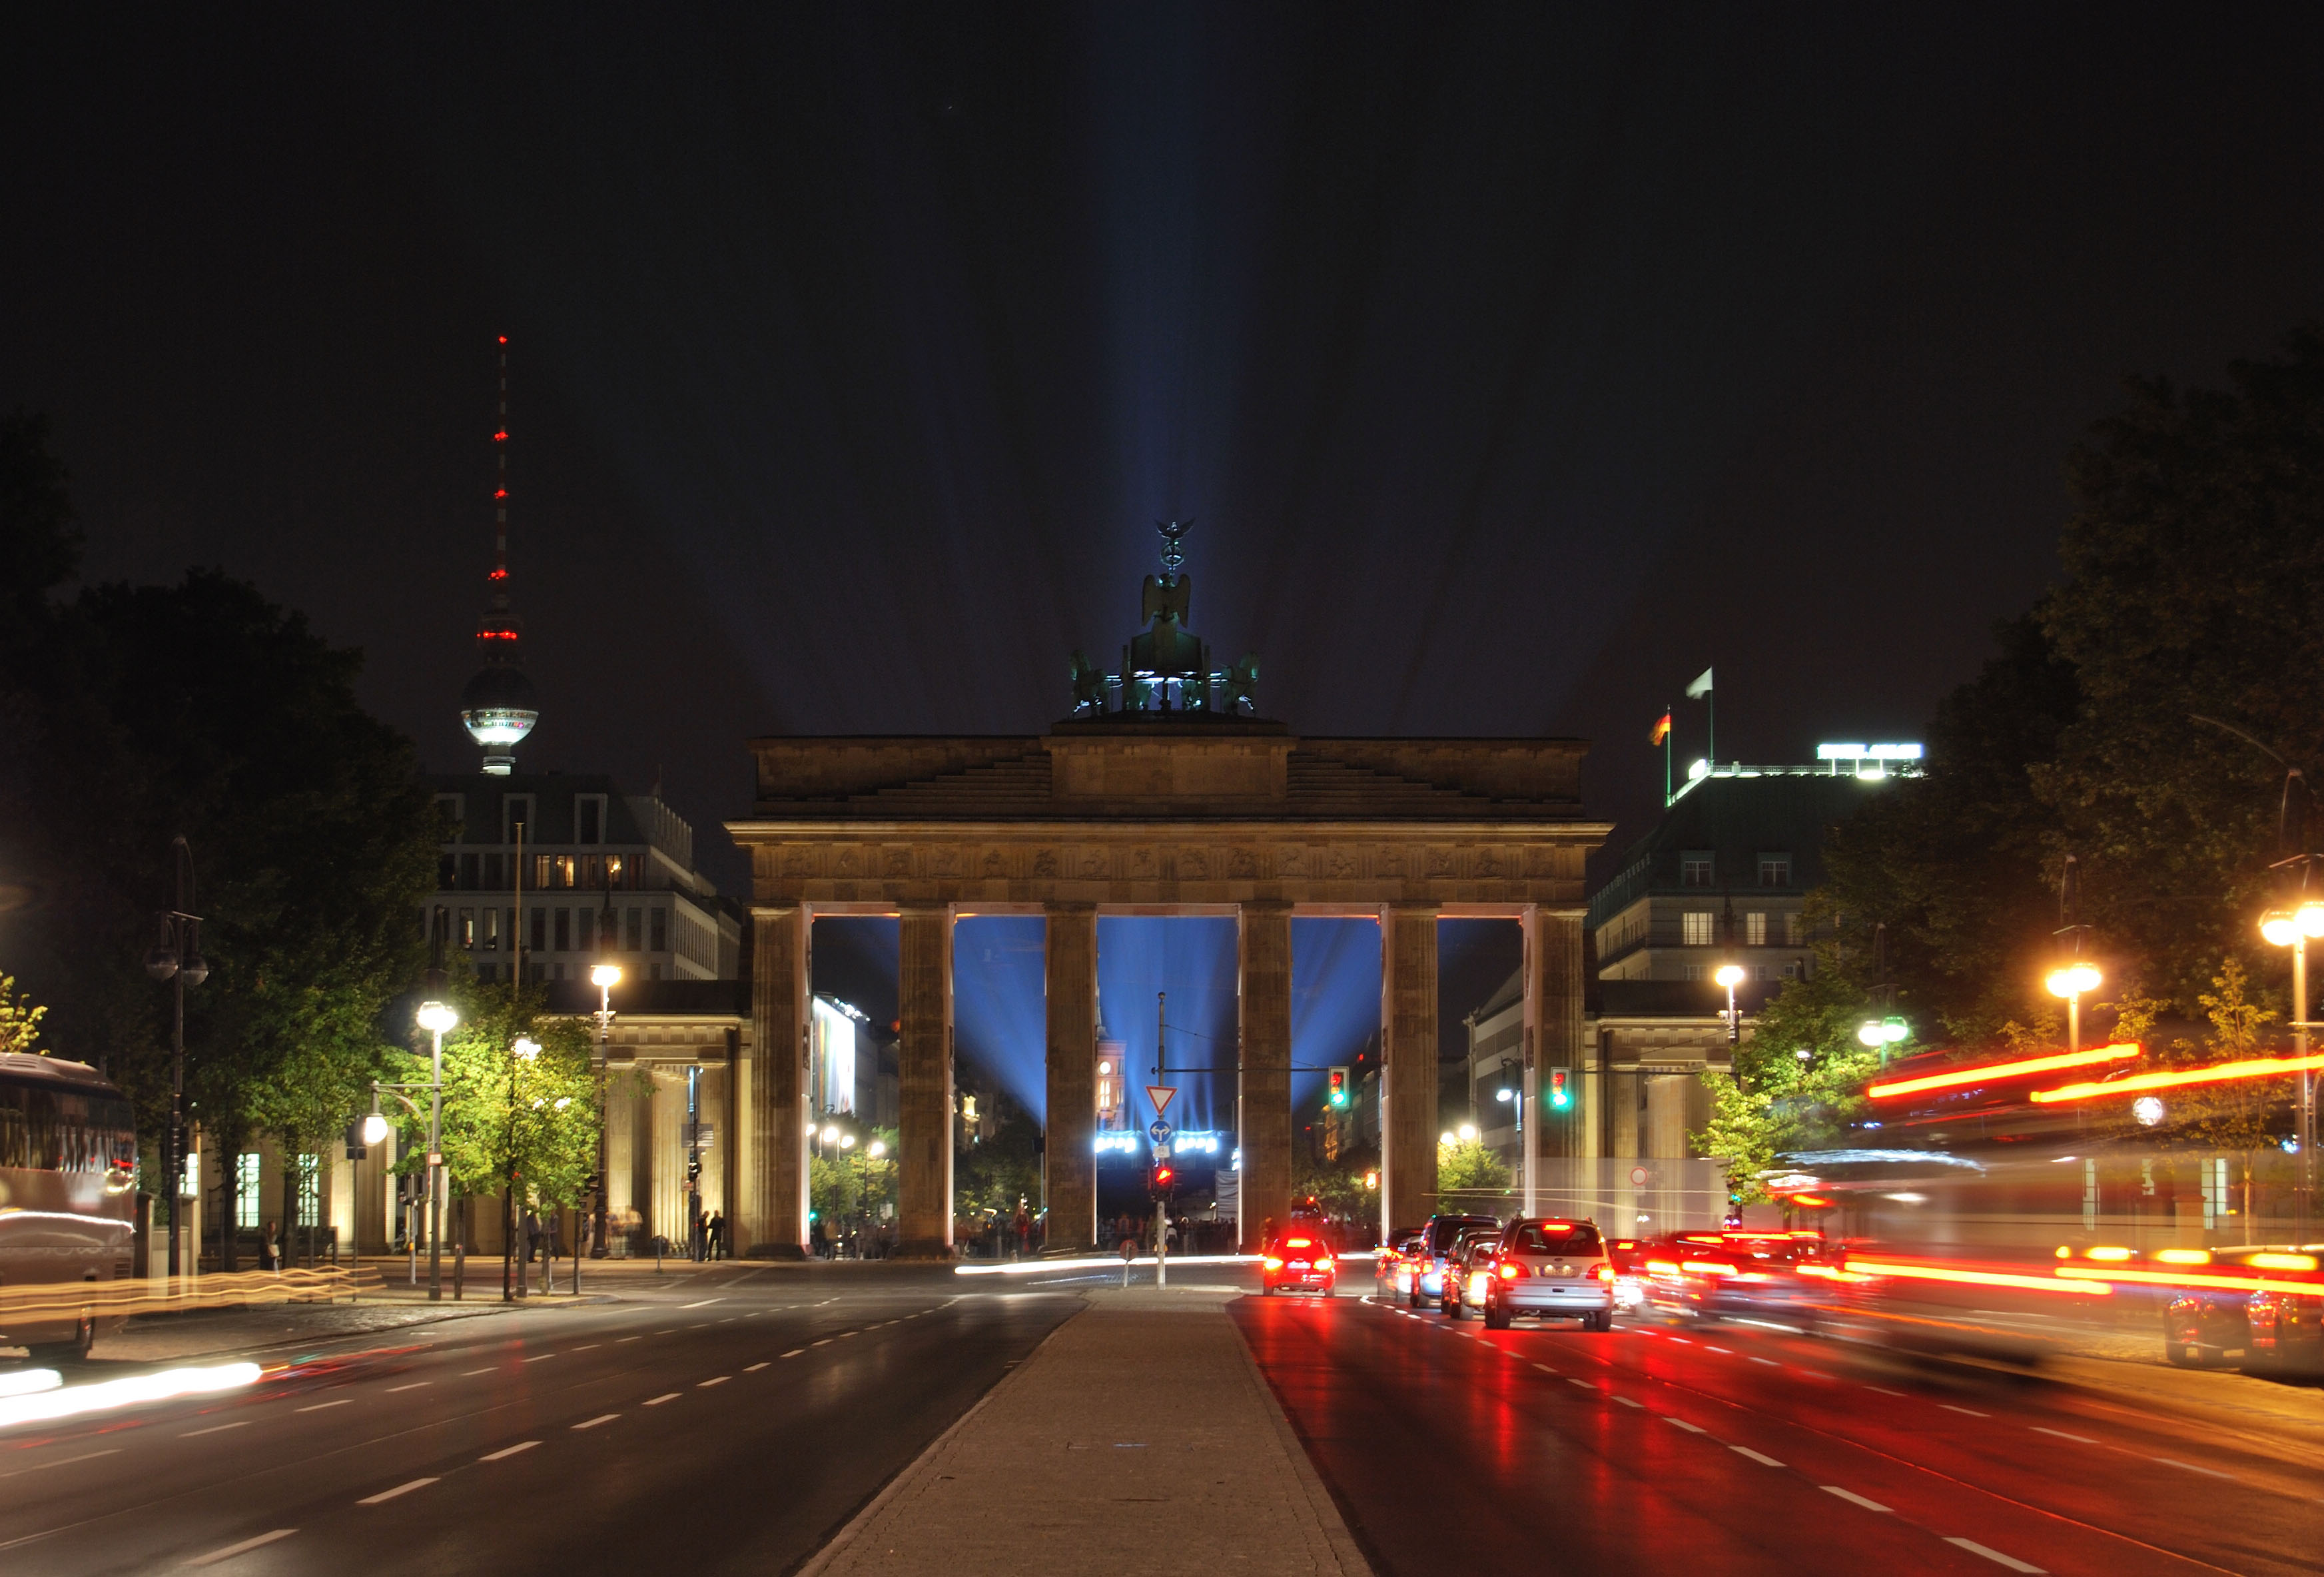 brandenburg gate at night - photo #34